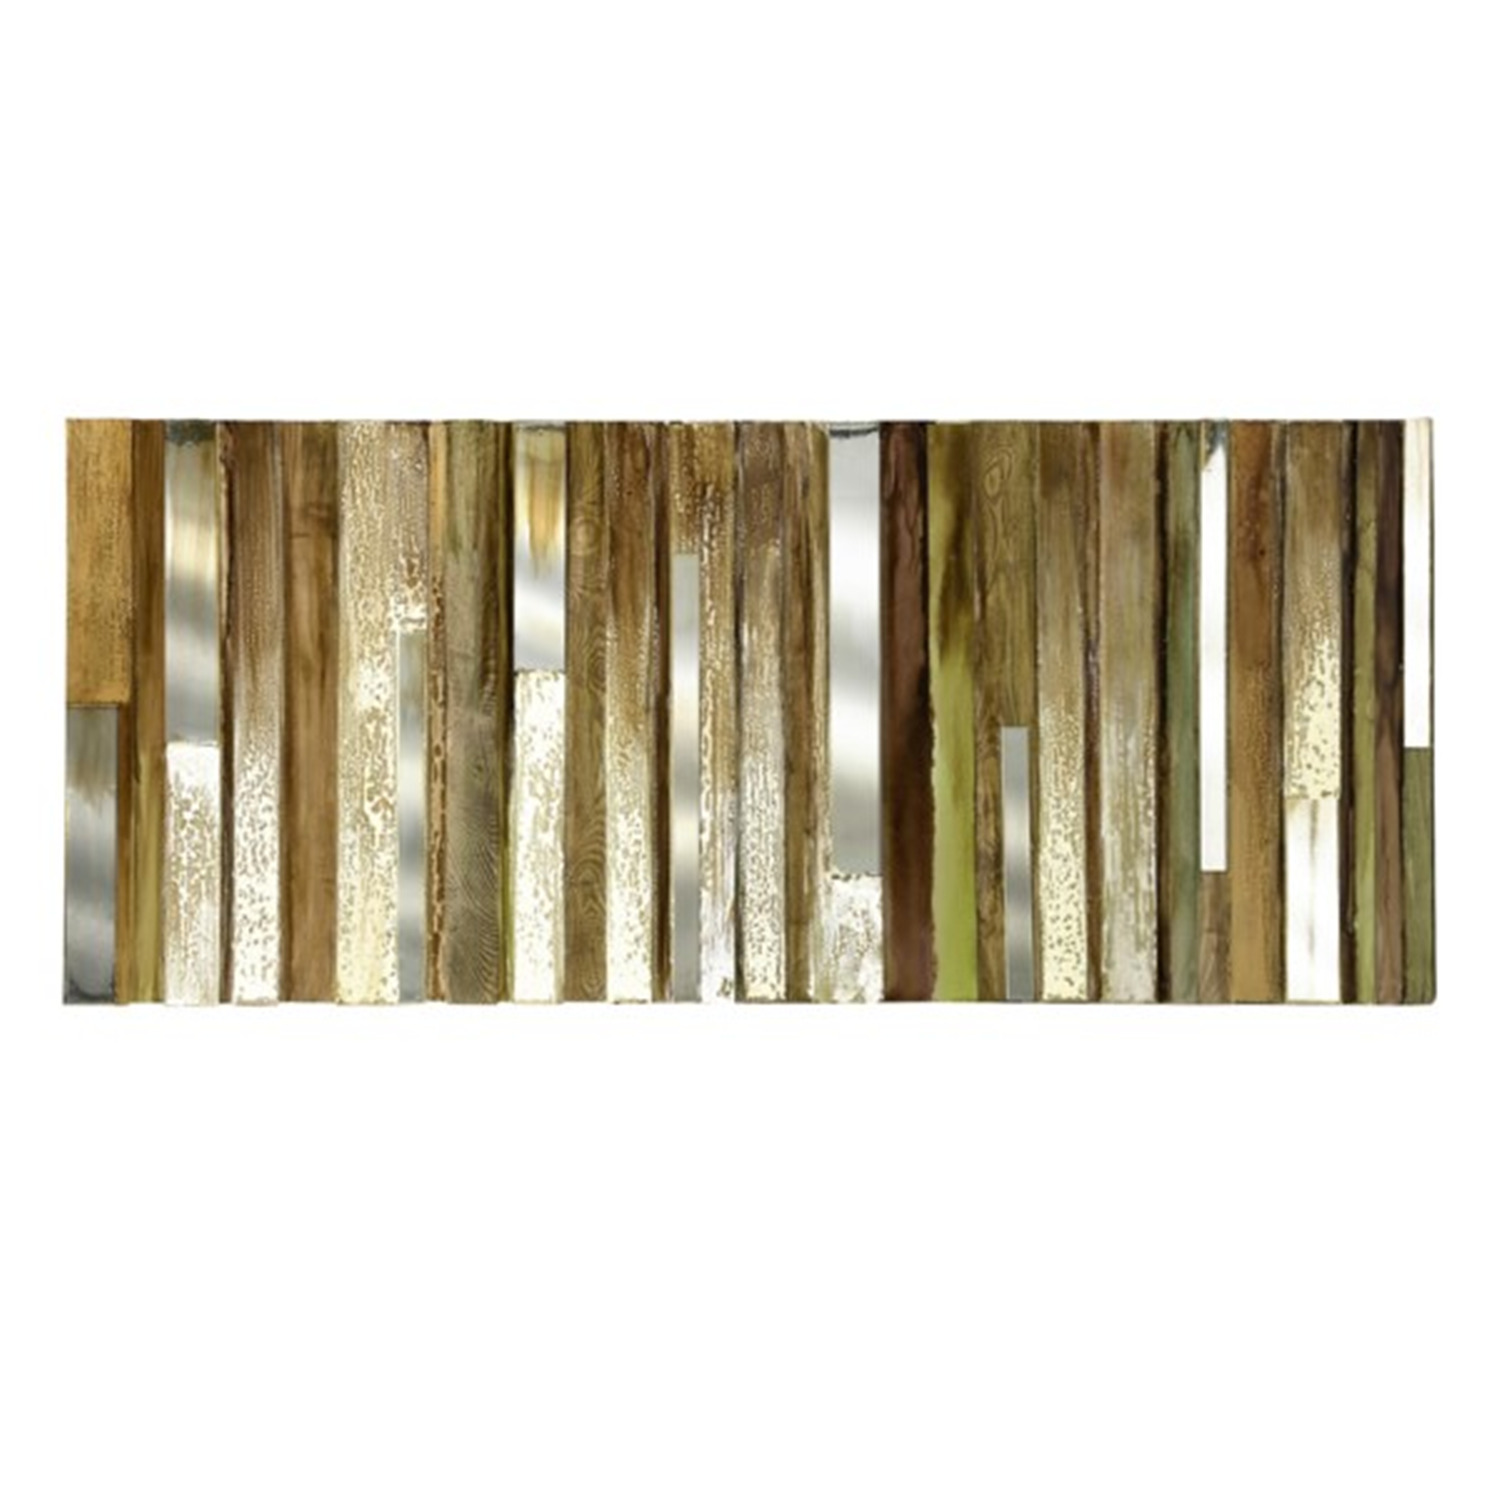 serenity lines wall decor